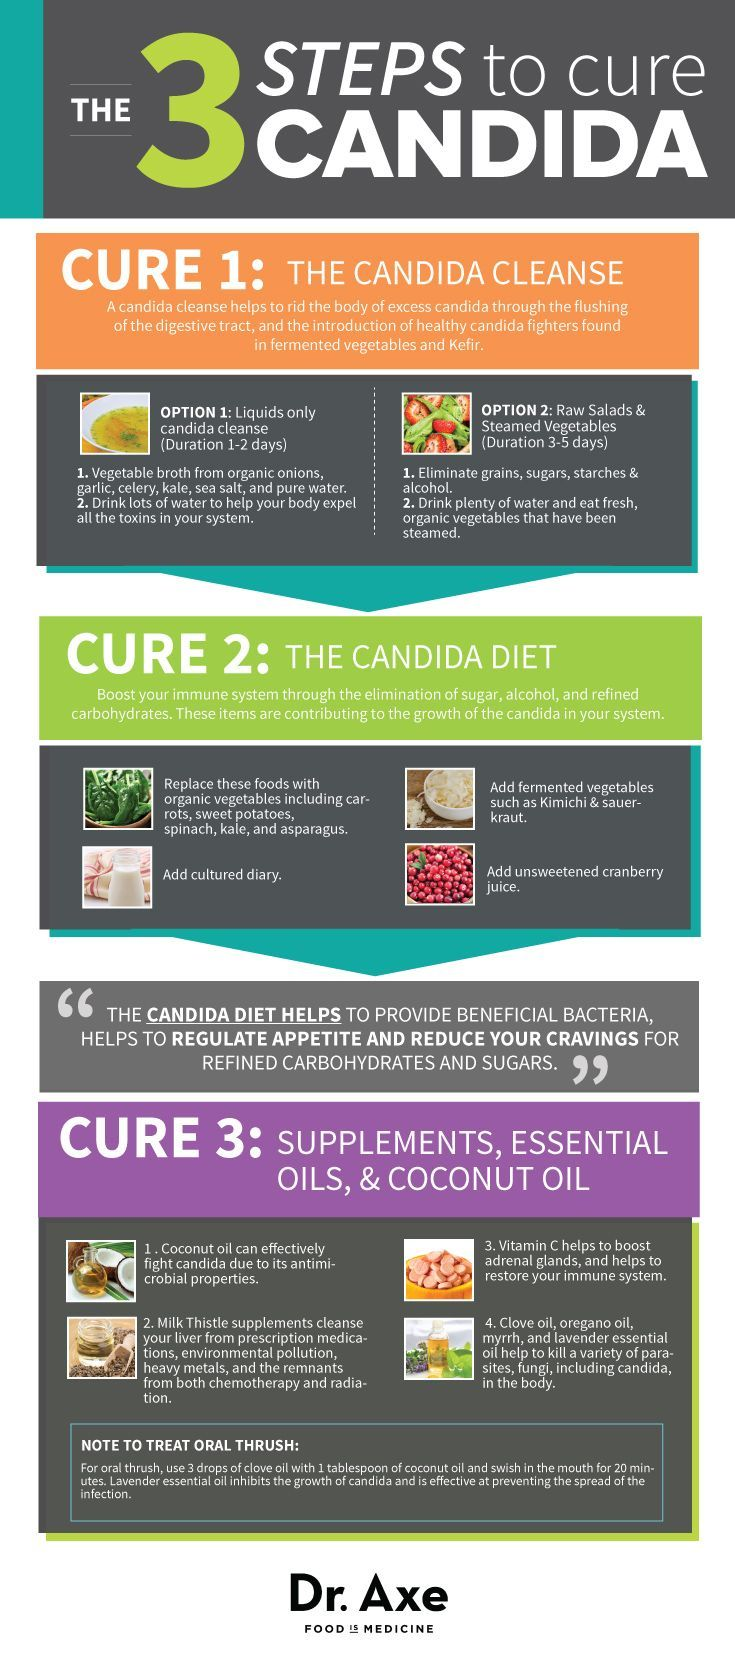 9 Candida Symptoms & 3 Steps To Cure It I love Dr. Axe, but…